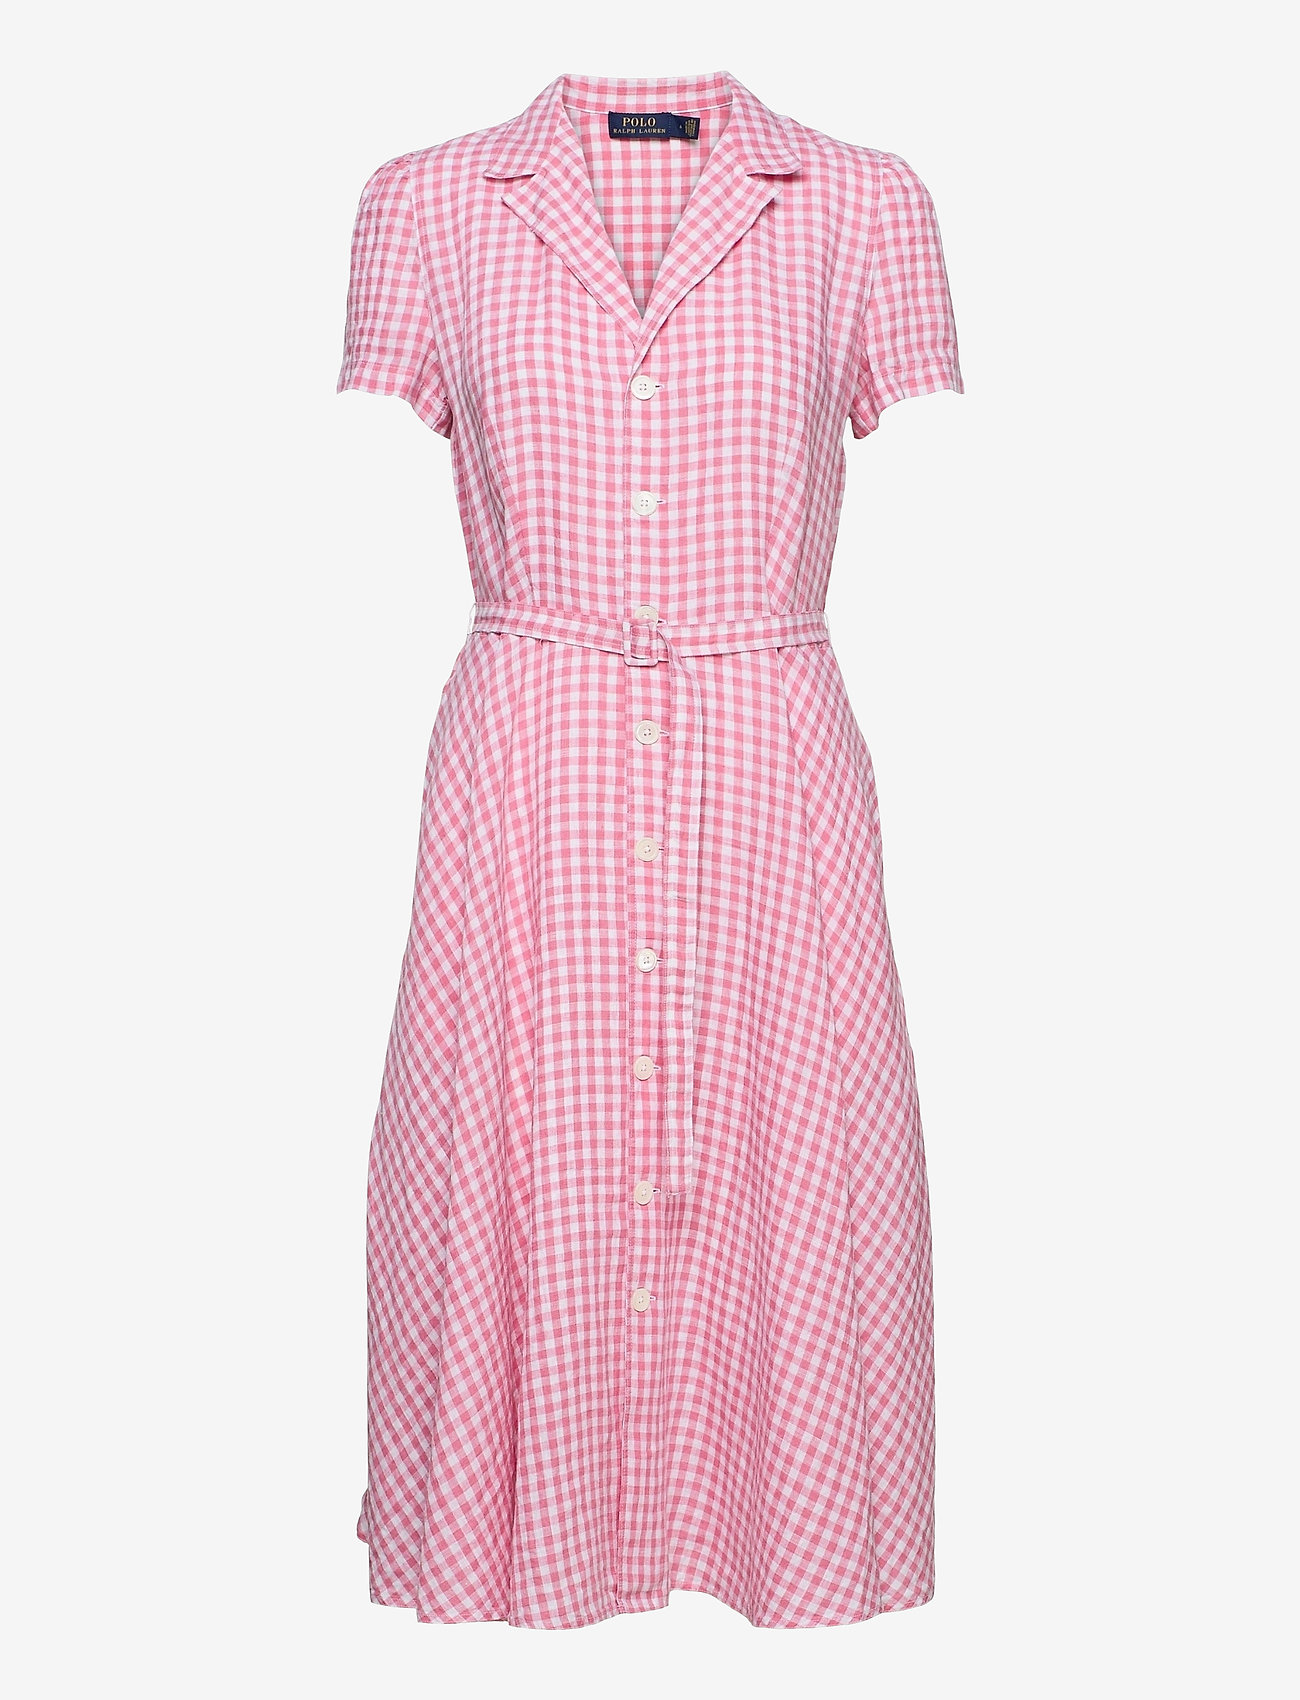 Polo Ralph Lauren - Gingham Linen Shirtdress - sommerkjoler - 918 ribbon pink/w - 0